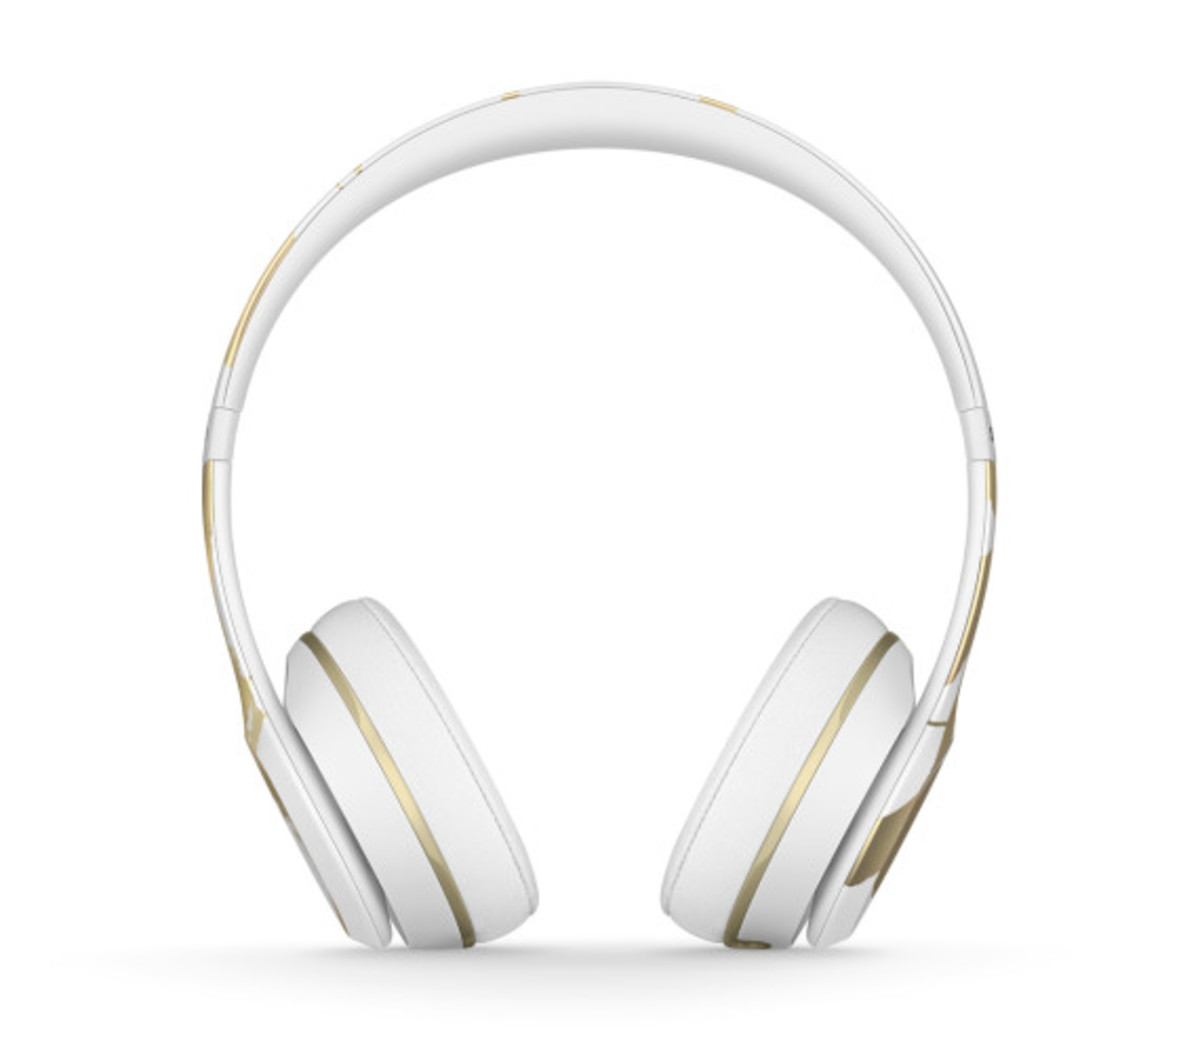 chen-man-beats-by-dre-chinese-new-year-solo2-headphones-05